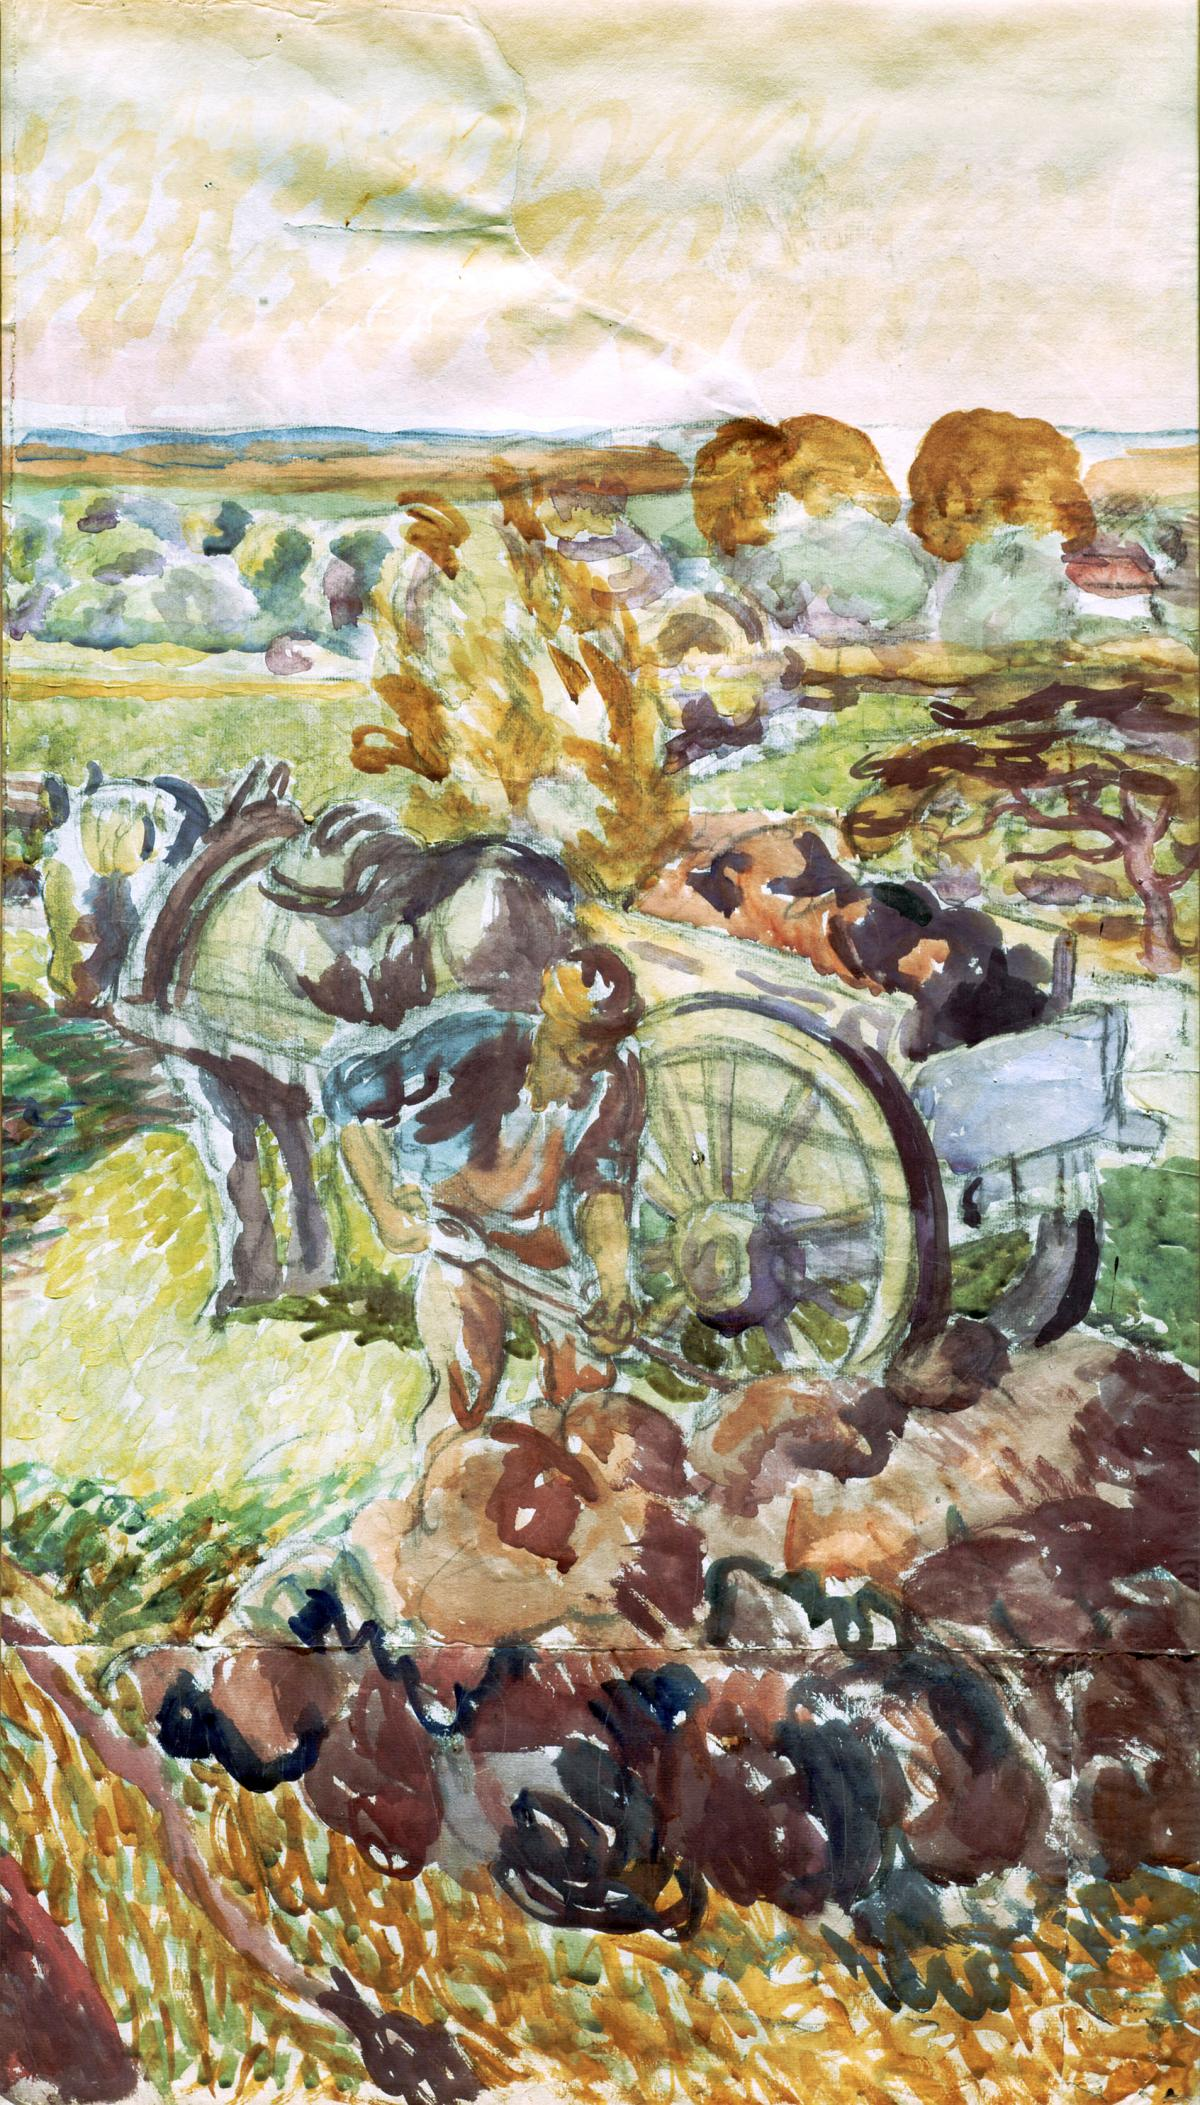 Swirling brushstrokes create a scene of a farmer shoveling soil, with a horse-drawn cart behind him, in the midst of rolling hills and farmland, done in greens and browns